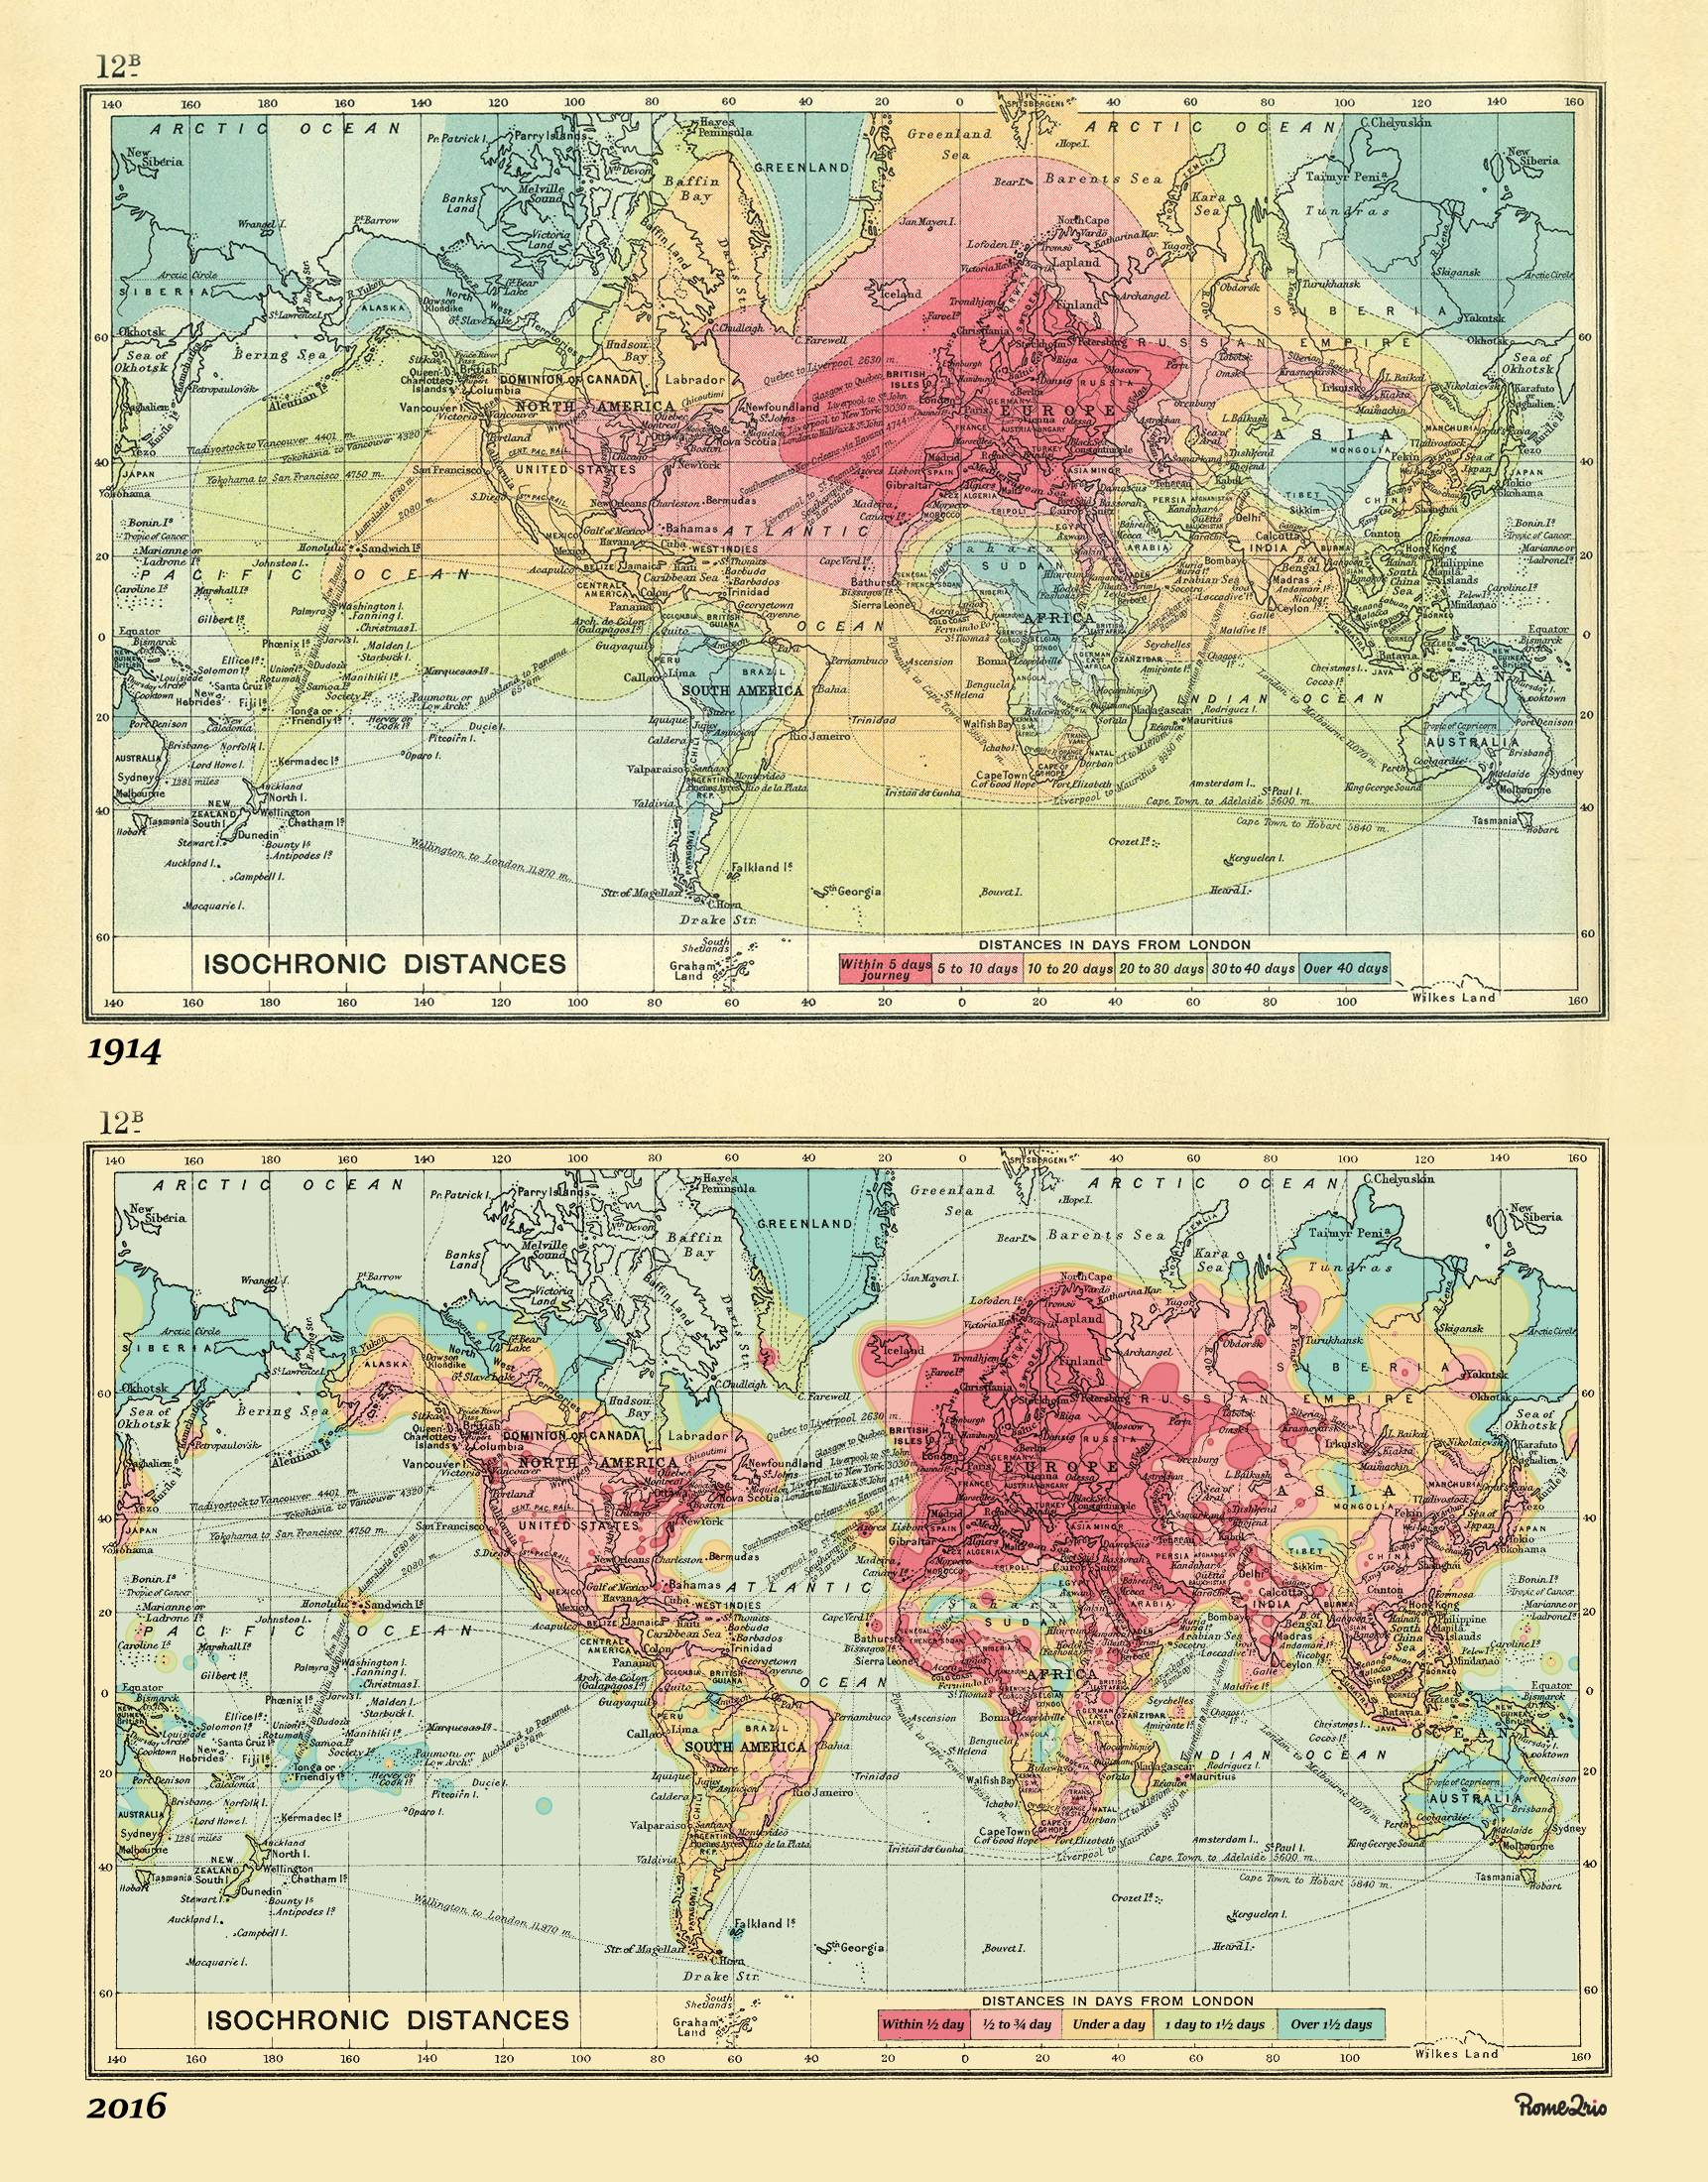 Isochronic map of world travel from London in 1914 and 2016.